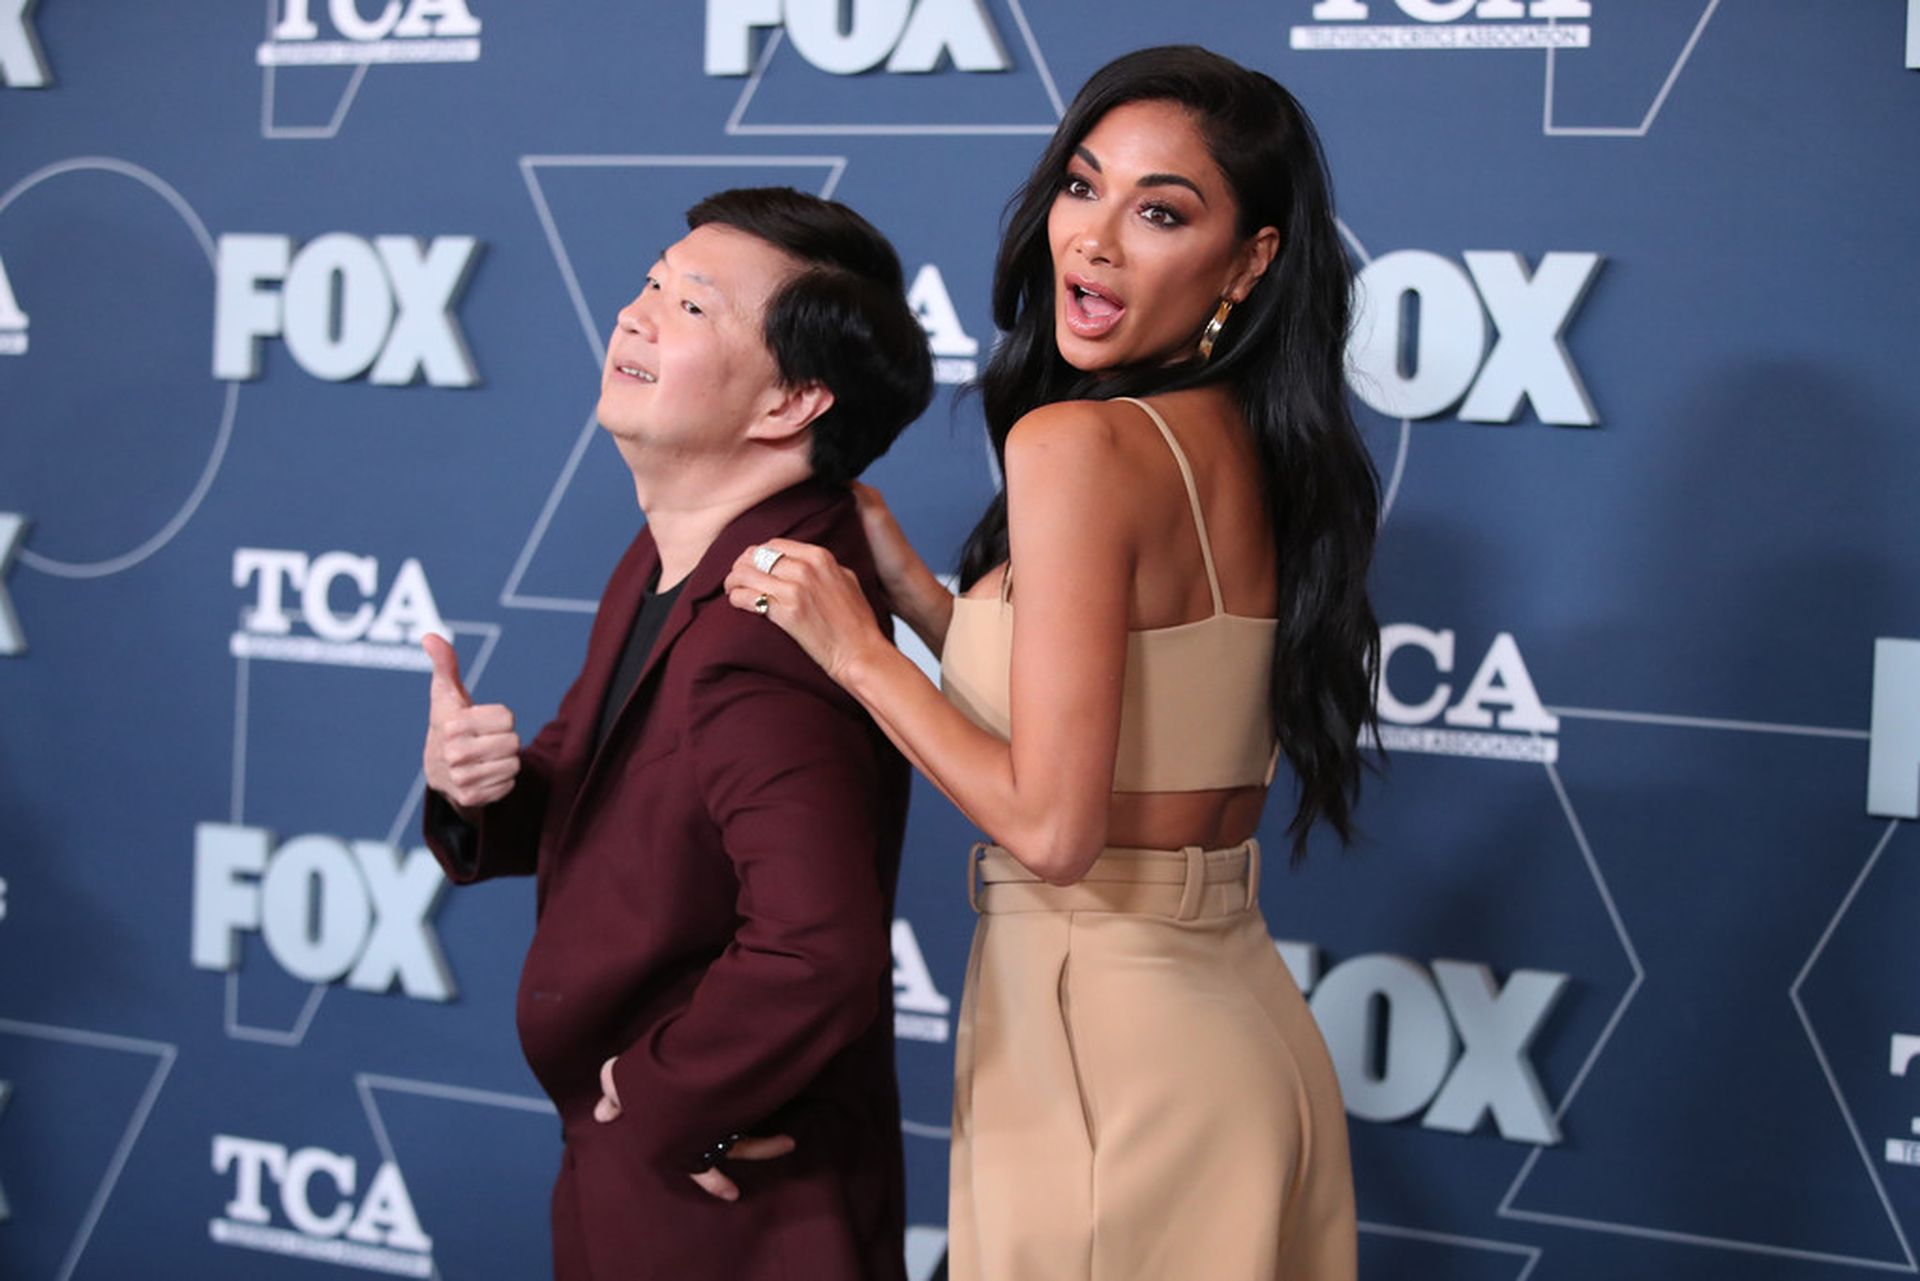 Nicole Scherzinger Arrive at the FOX Winter TCA 2020 All-Star Party